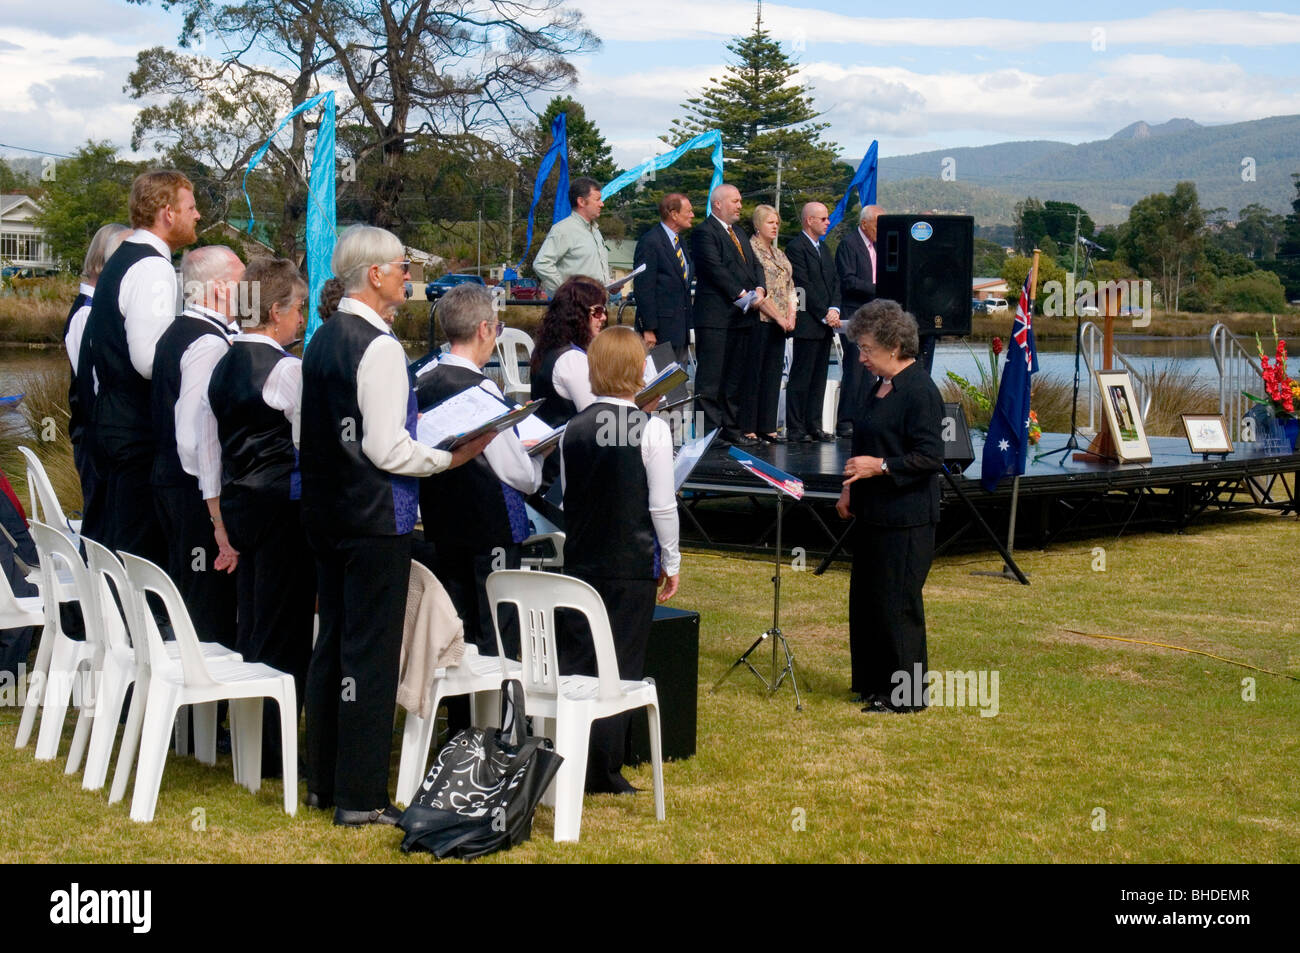 A choir leads singing of the national anthem at an Australian citizenship ceremony staged outside Hobart, Tasmania - Stock Image